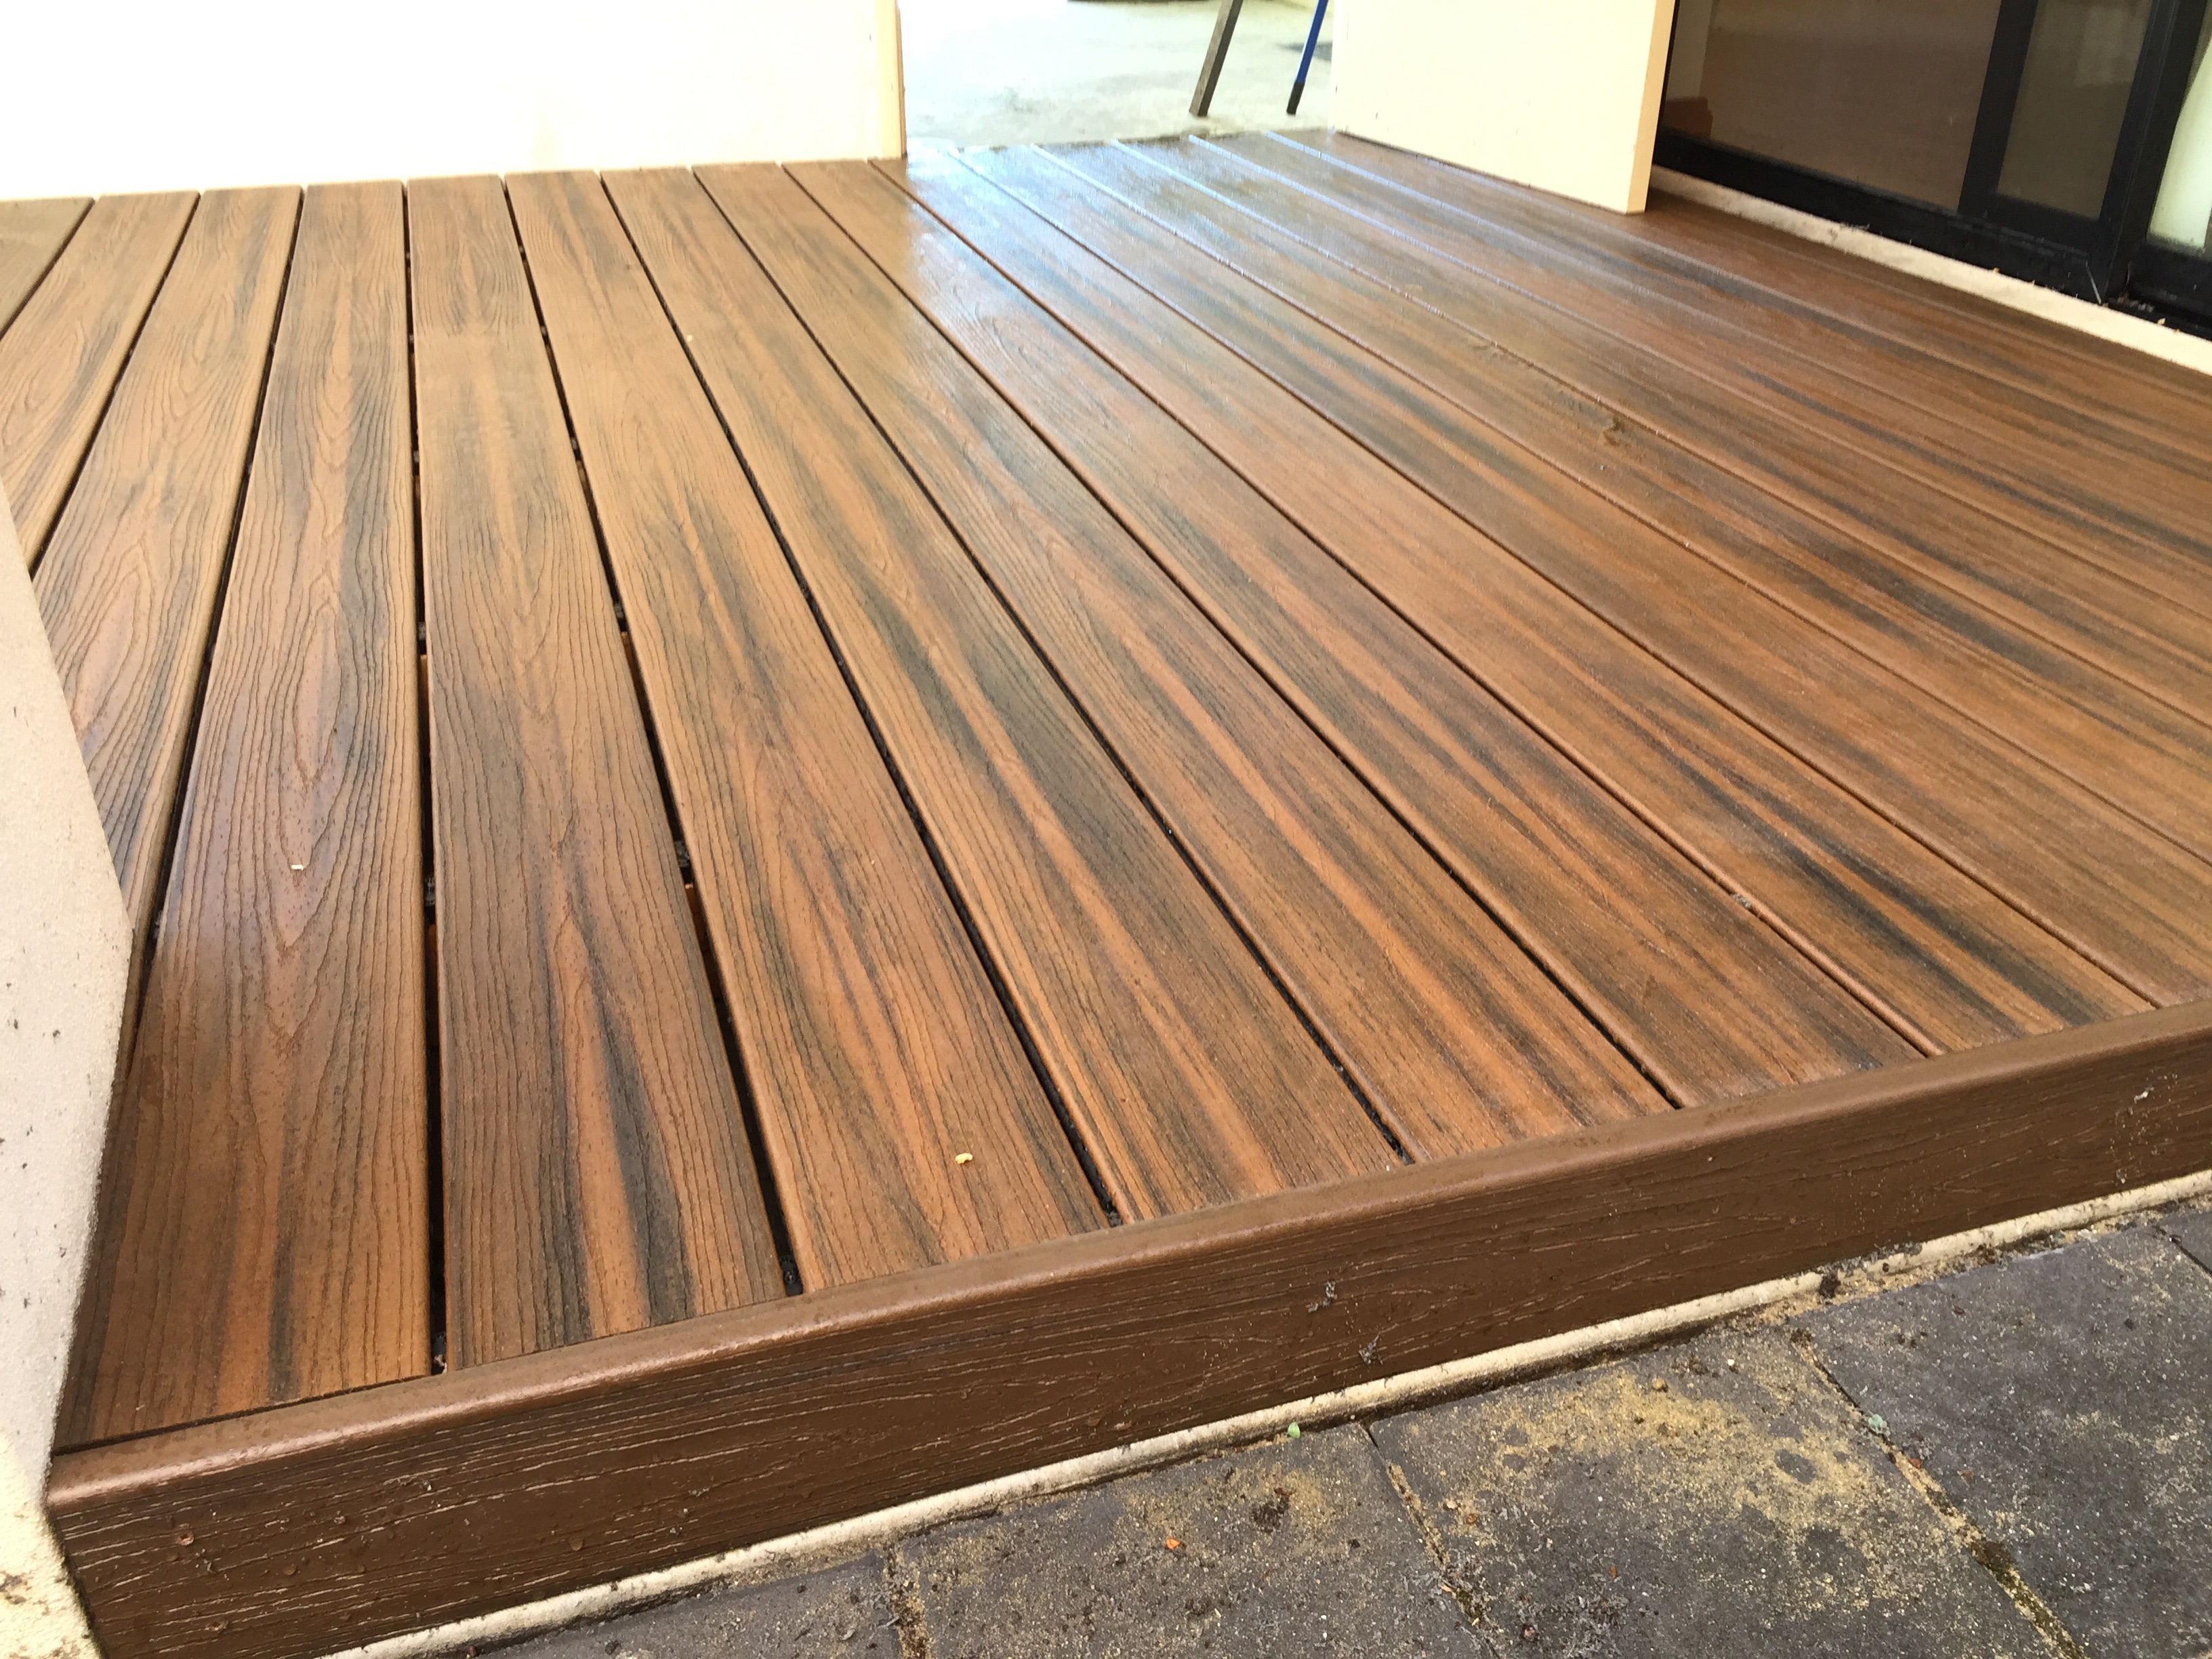 Trex deck boards composite decking perth Compare composite decking brands